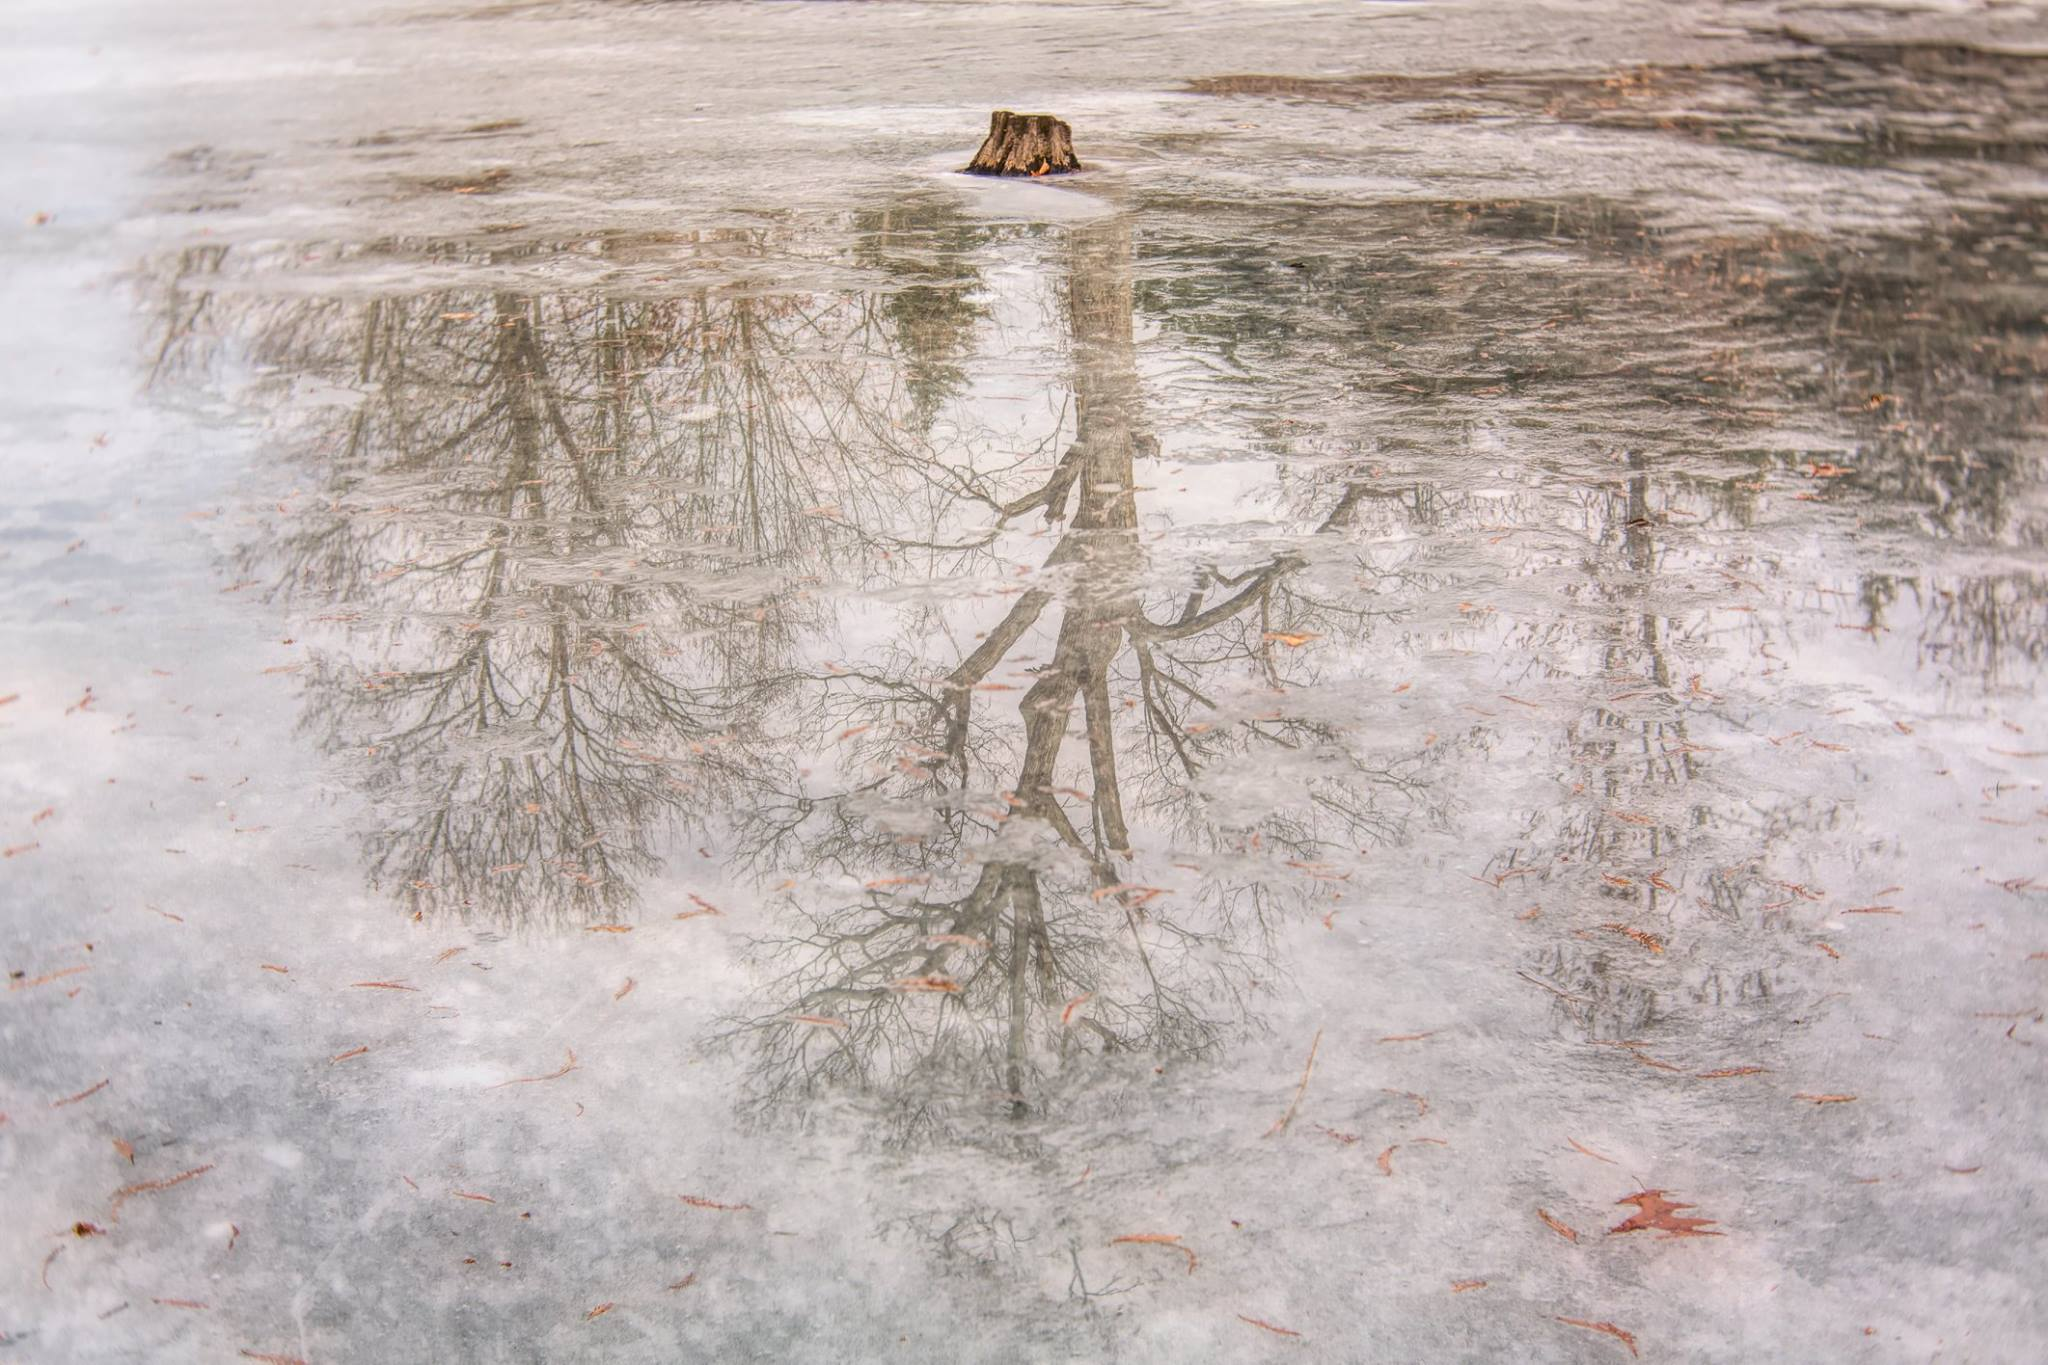 tree stump in a pond winter trees reflection in shallow water Lensbaby featured photos